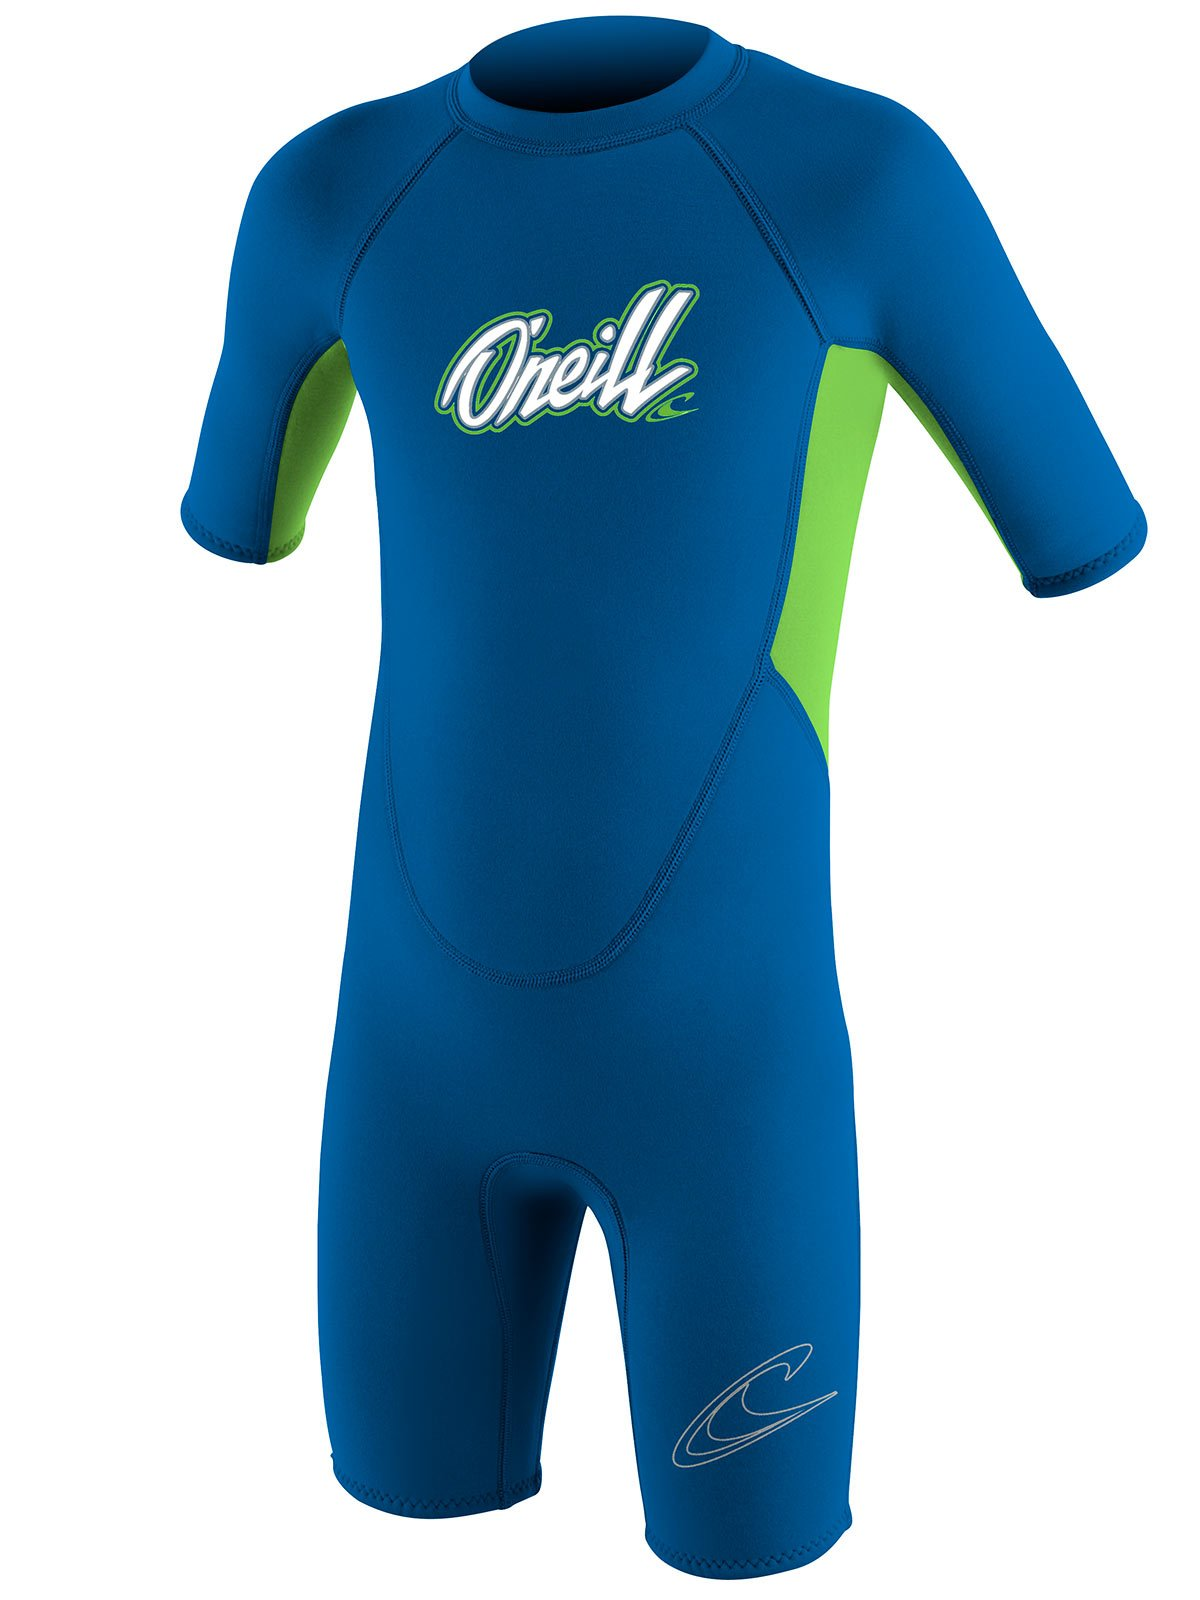 O'Neill Reactor toddler shorty wetsuit Youth 3 Ocean/dayglo (5127B) by O'Neill Wetsuits